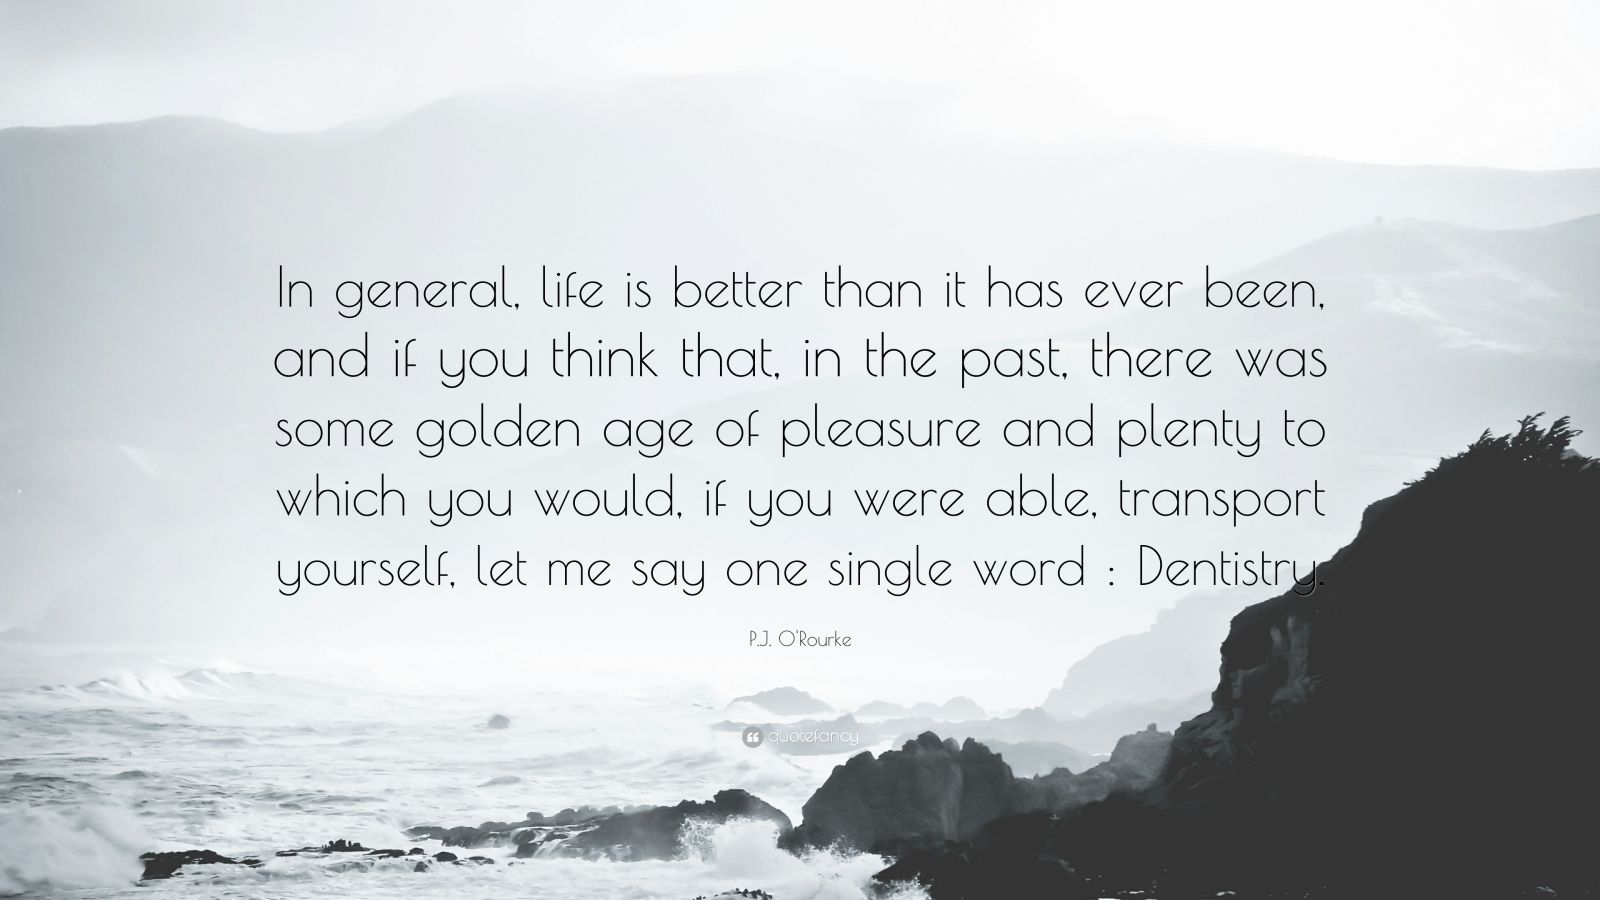 """P.J. O'Rourke Quote: """"In general, life is better than it has ever been, and if you think that, in the past, there was some golden age of pleasure and plenty to which you would, if you were able, transport yourself, let me say one single word : Dentistry."""""""